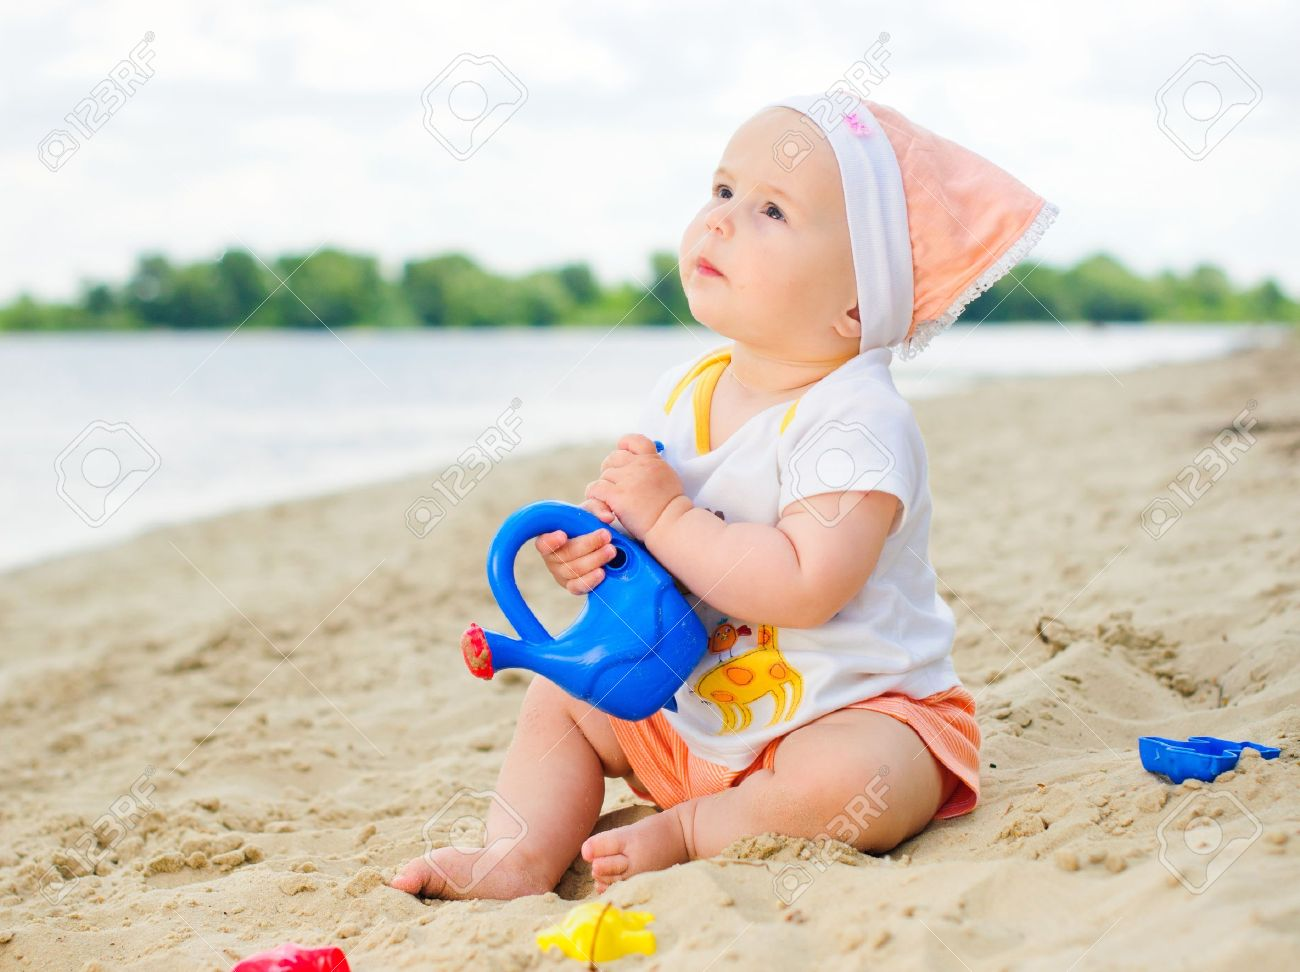 baby girl playing on the beach with sand. Stock Photo - 12370134